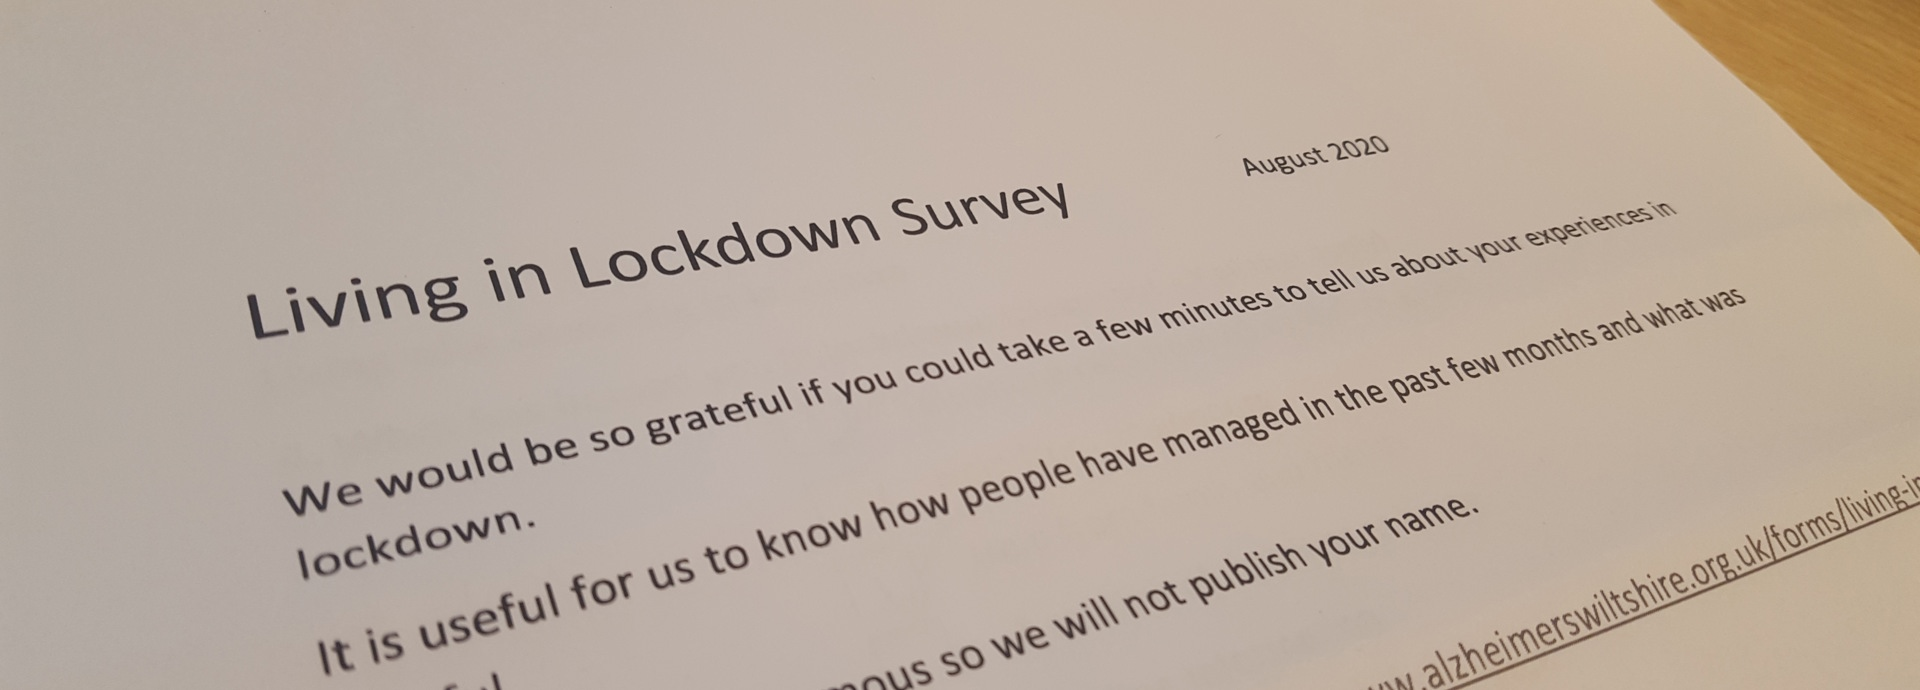 Survey reveals challenges